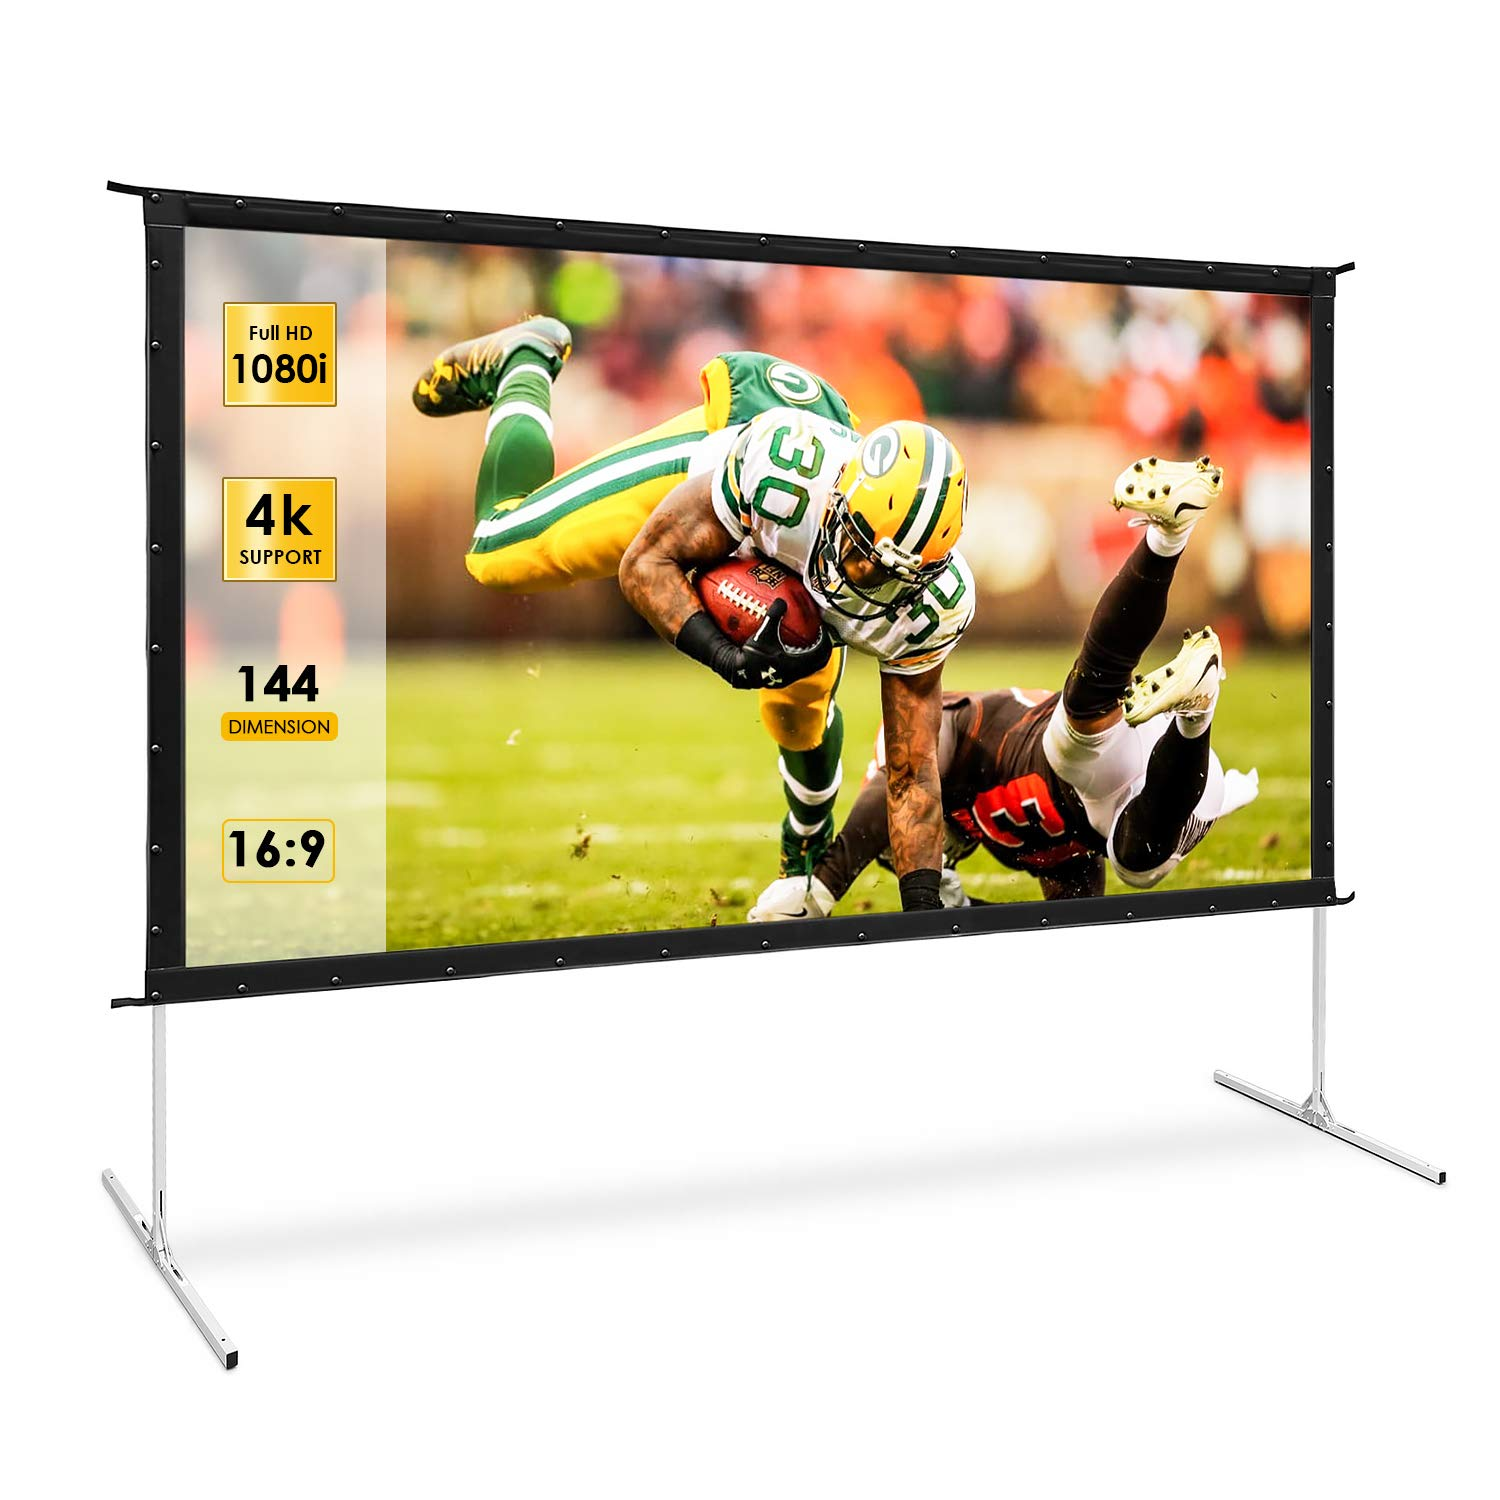 Projector Screen, TUSY 144-inch Portable Movie Screen, 16:9 4K Ultra HD 3D Projector Outdoor Movie with Stand-Folding Wall-Mounted Outdoor Screen for Home Theater Movies by TUSY